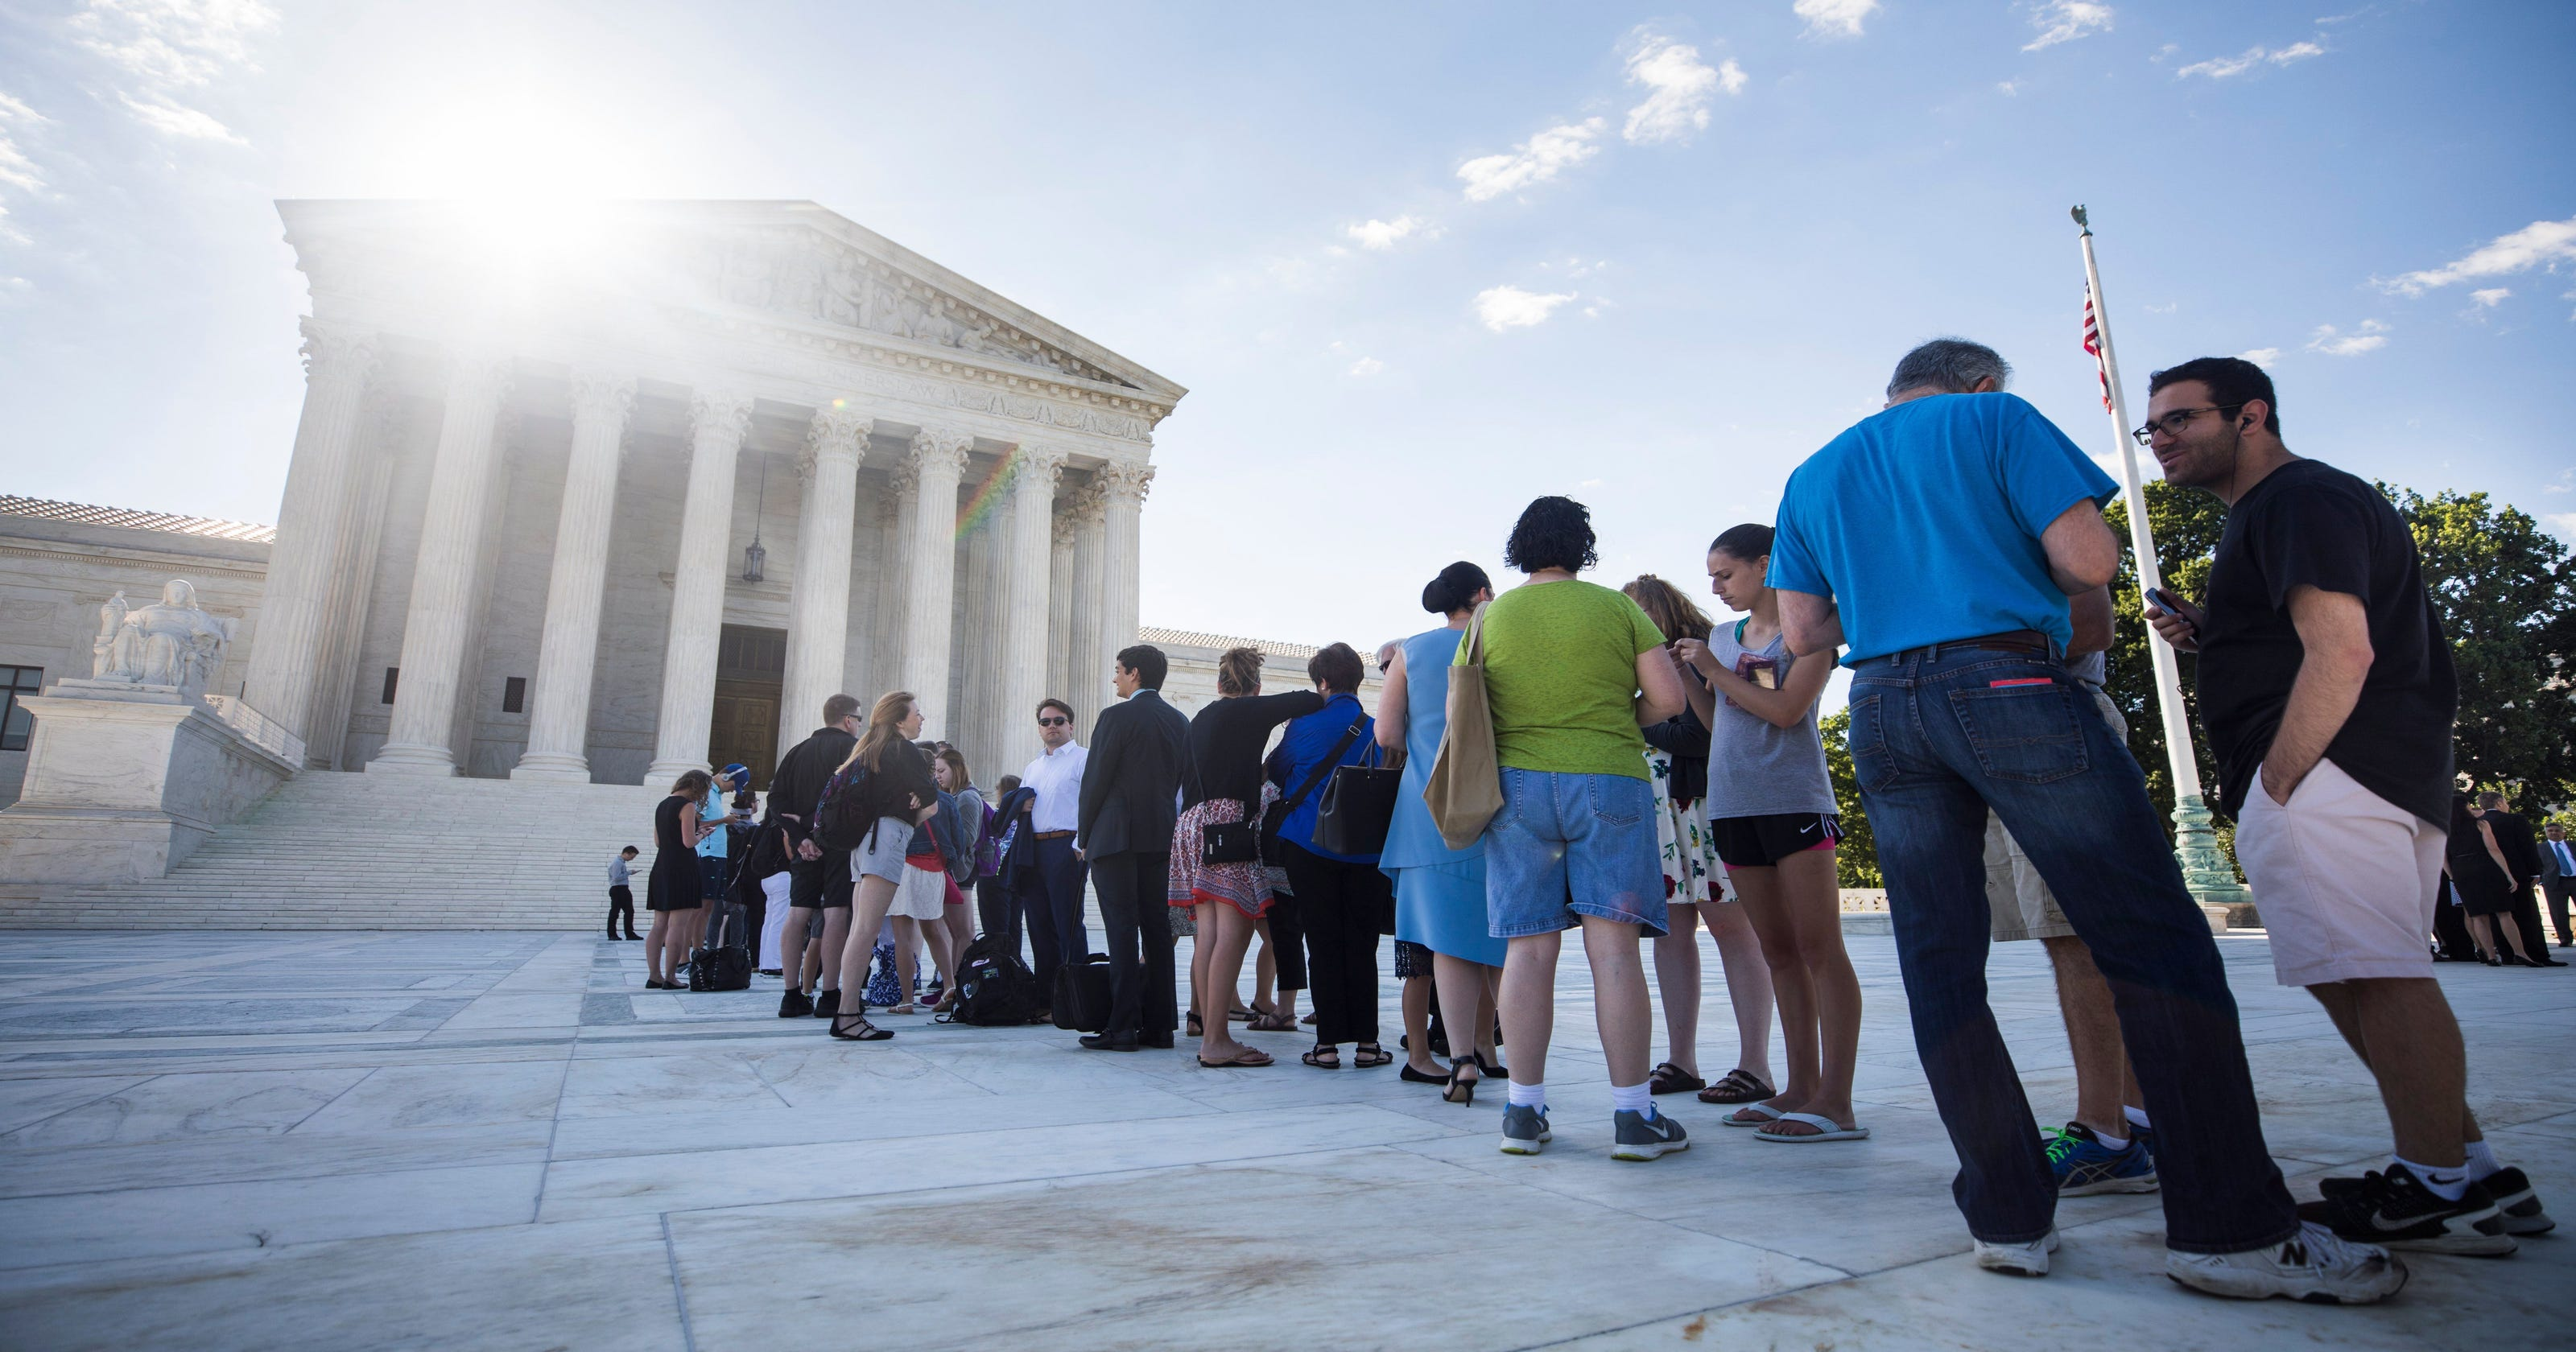 Unanimous Supreme Court Expands Scope >> Immigrants Decry President Trump Defends Travel Ban At Supreme Court